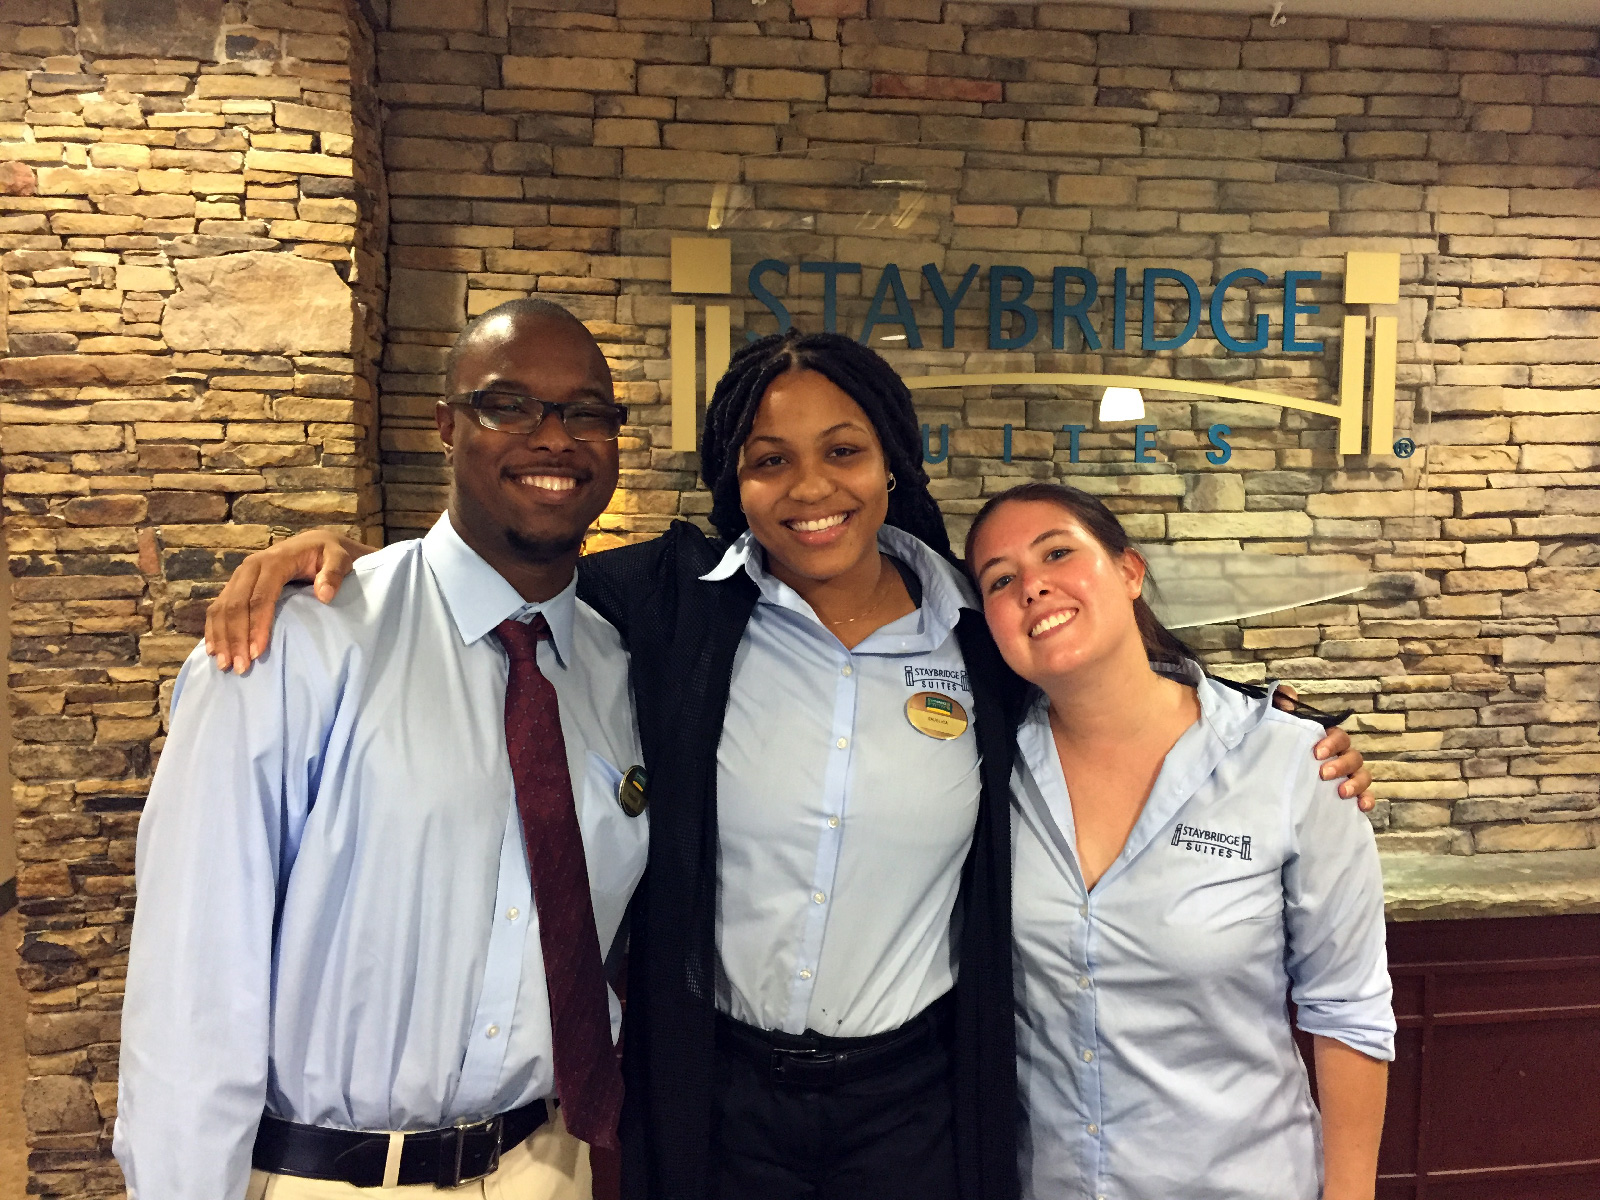 Staybridge Suites in Chattanooga by Jets Like Taxis